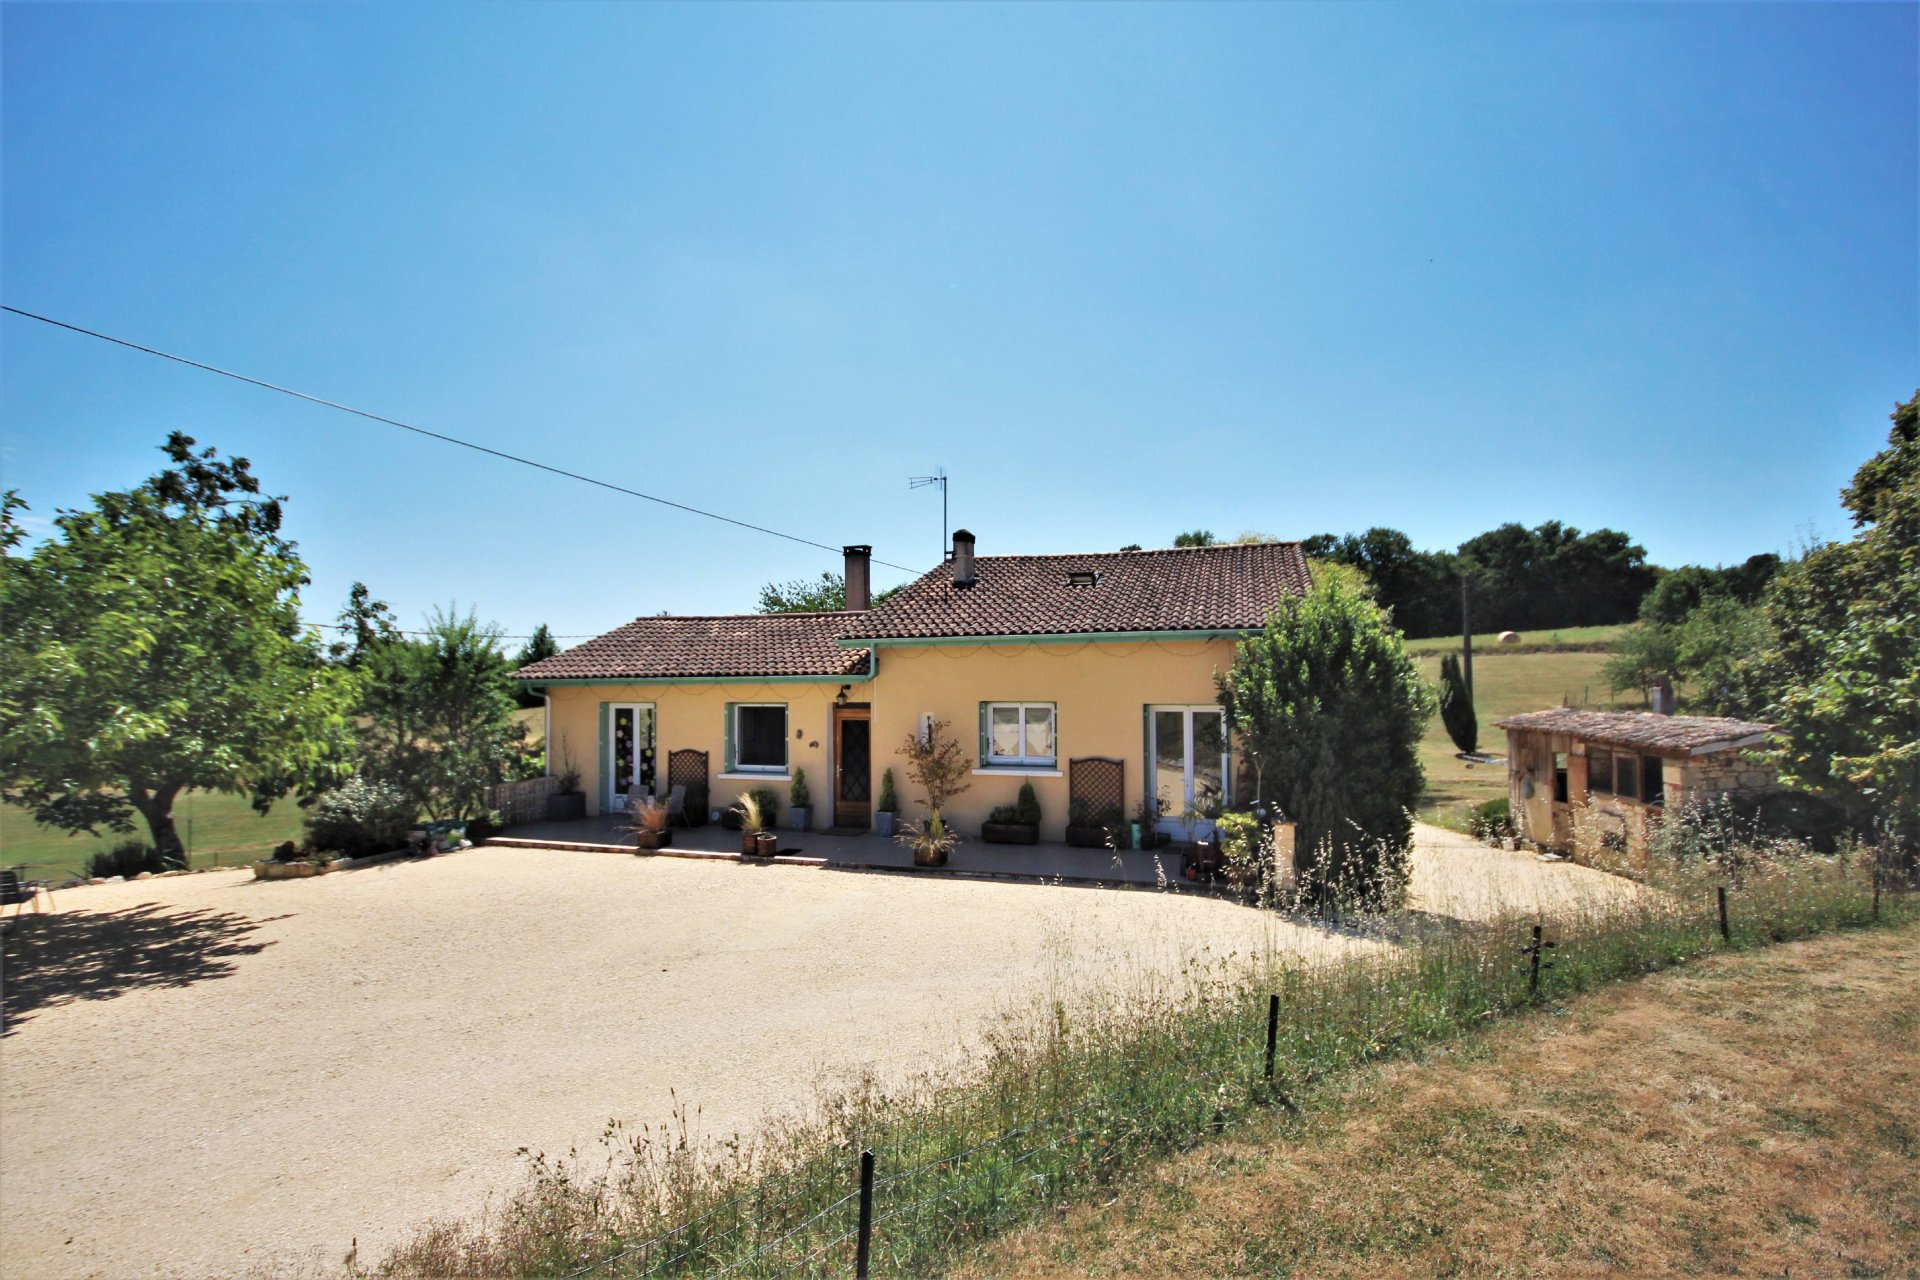 4 bedroom country home with lovely views and large fenced grounds